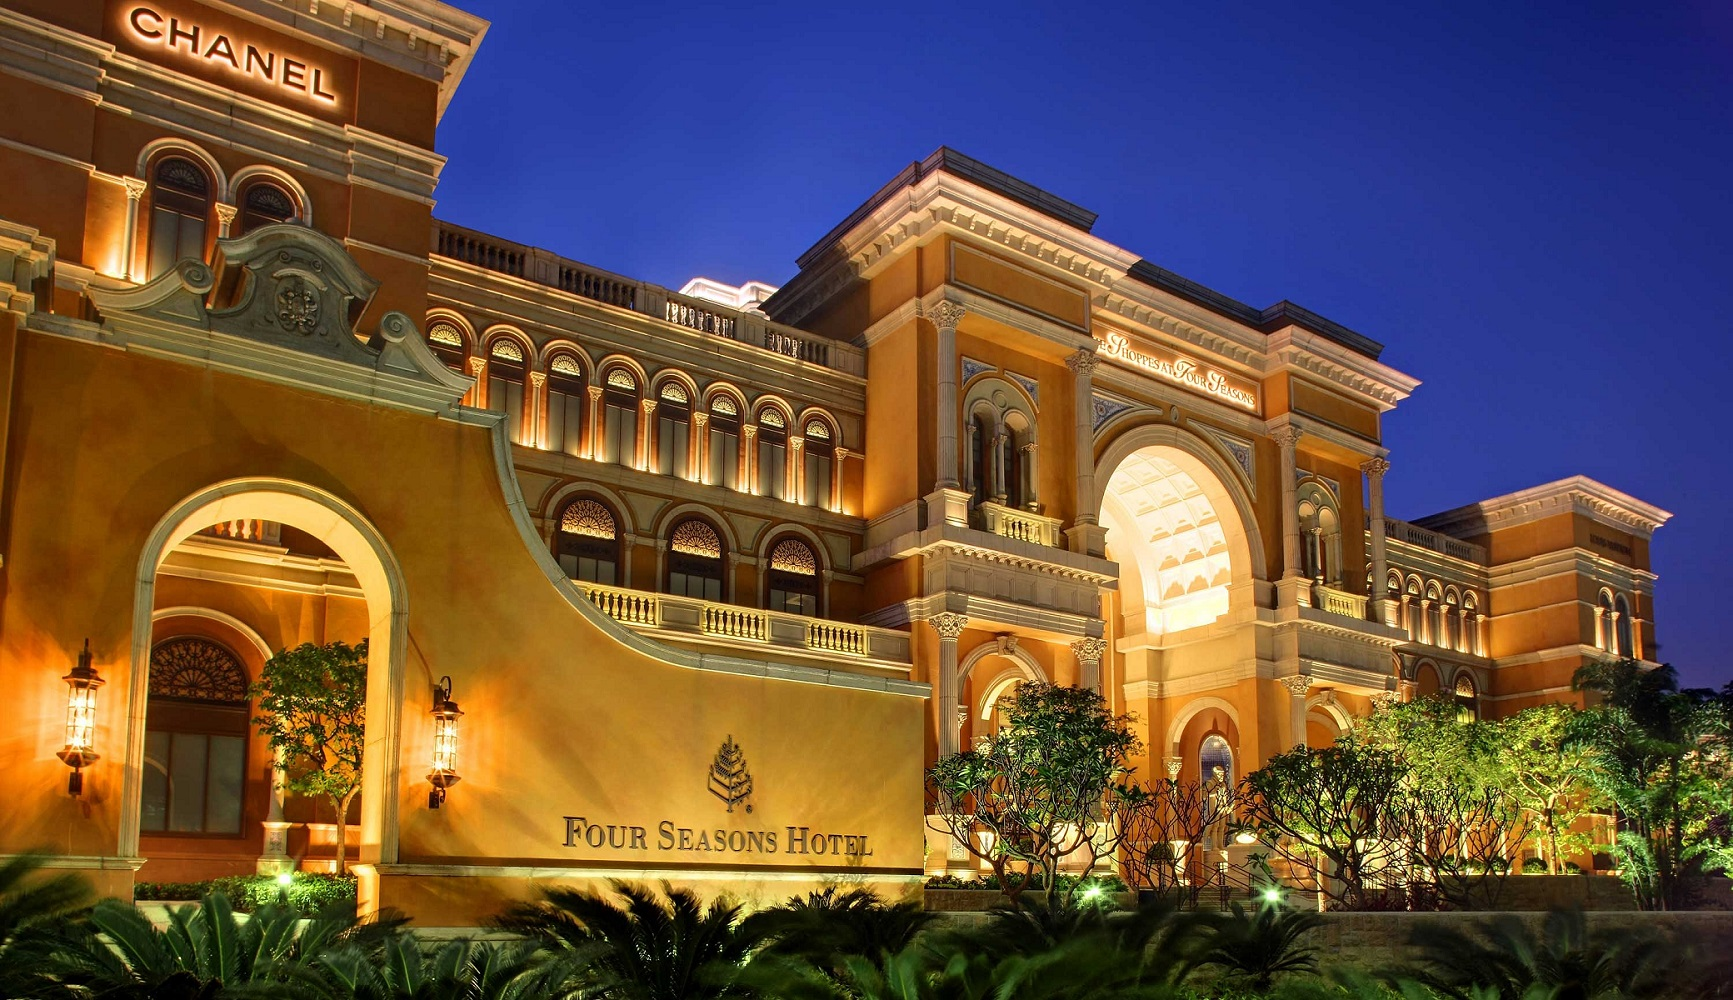 Four Seasons Hotel Macao